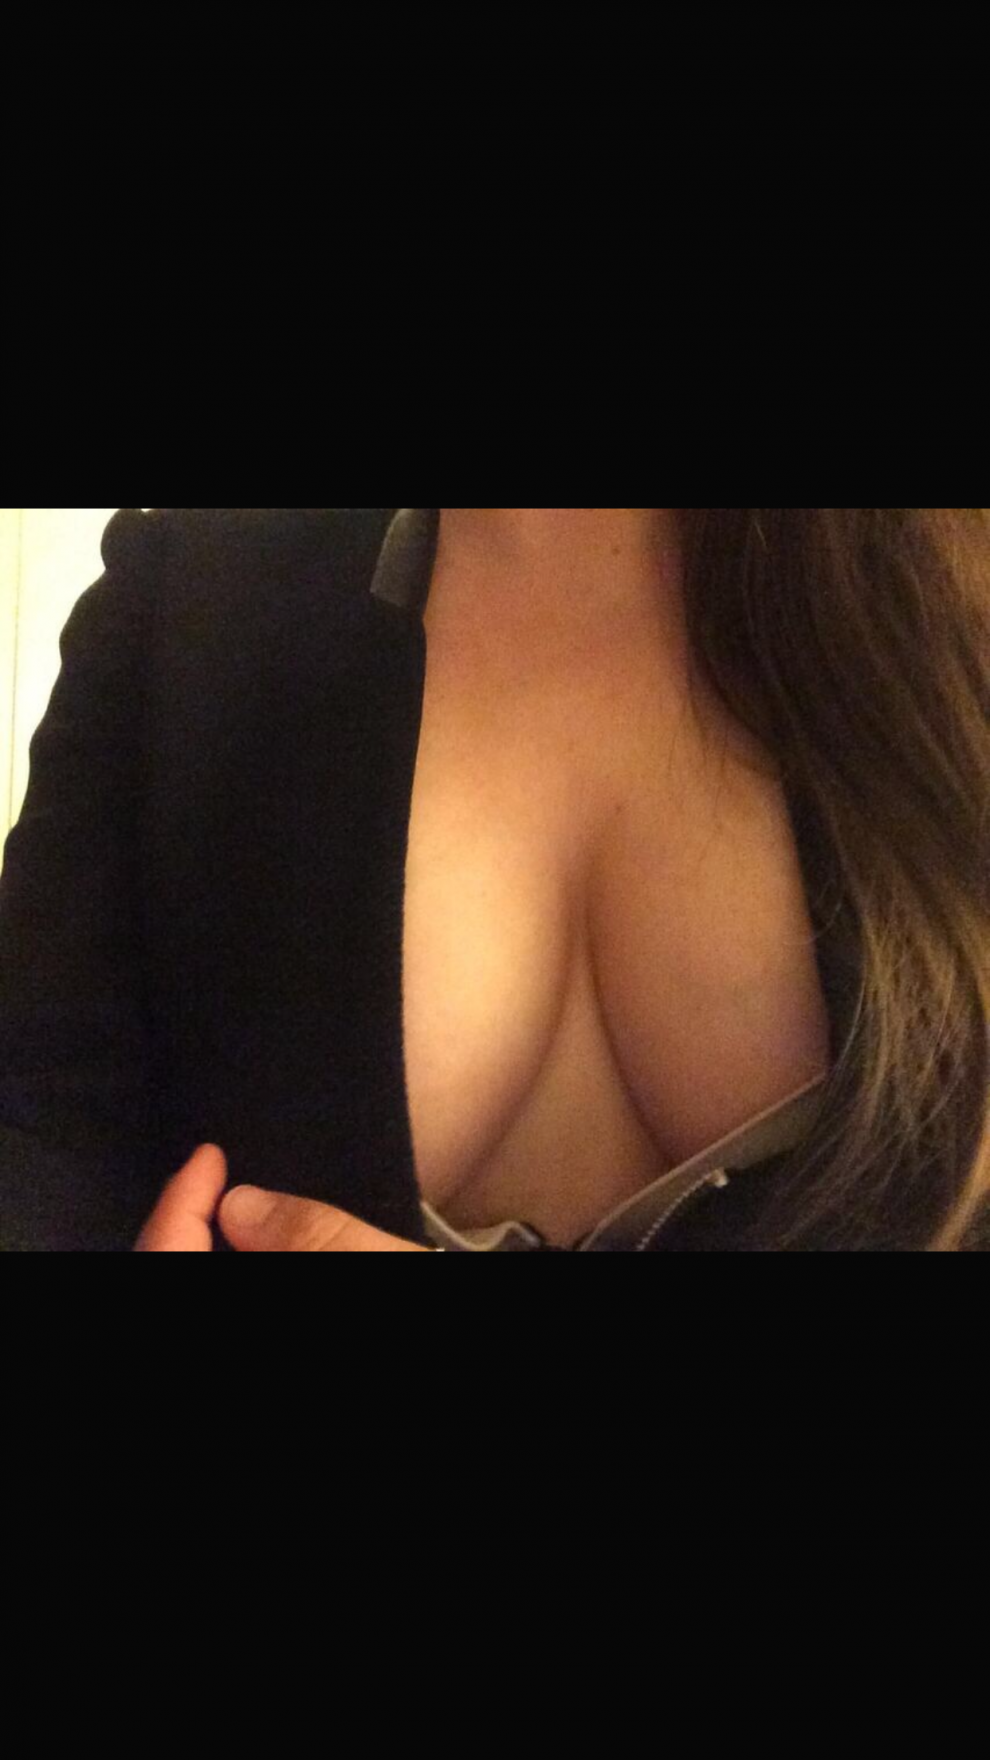 [F] am I doing this right? Would love to get some naughty PMs